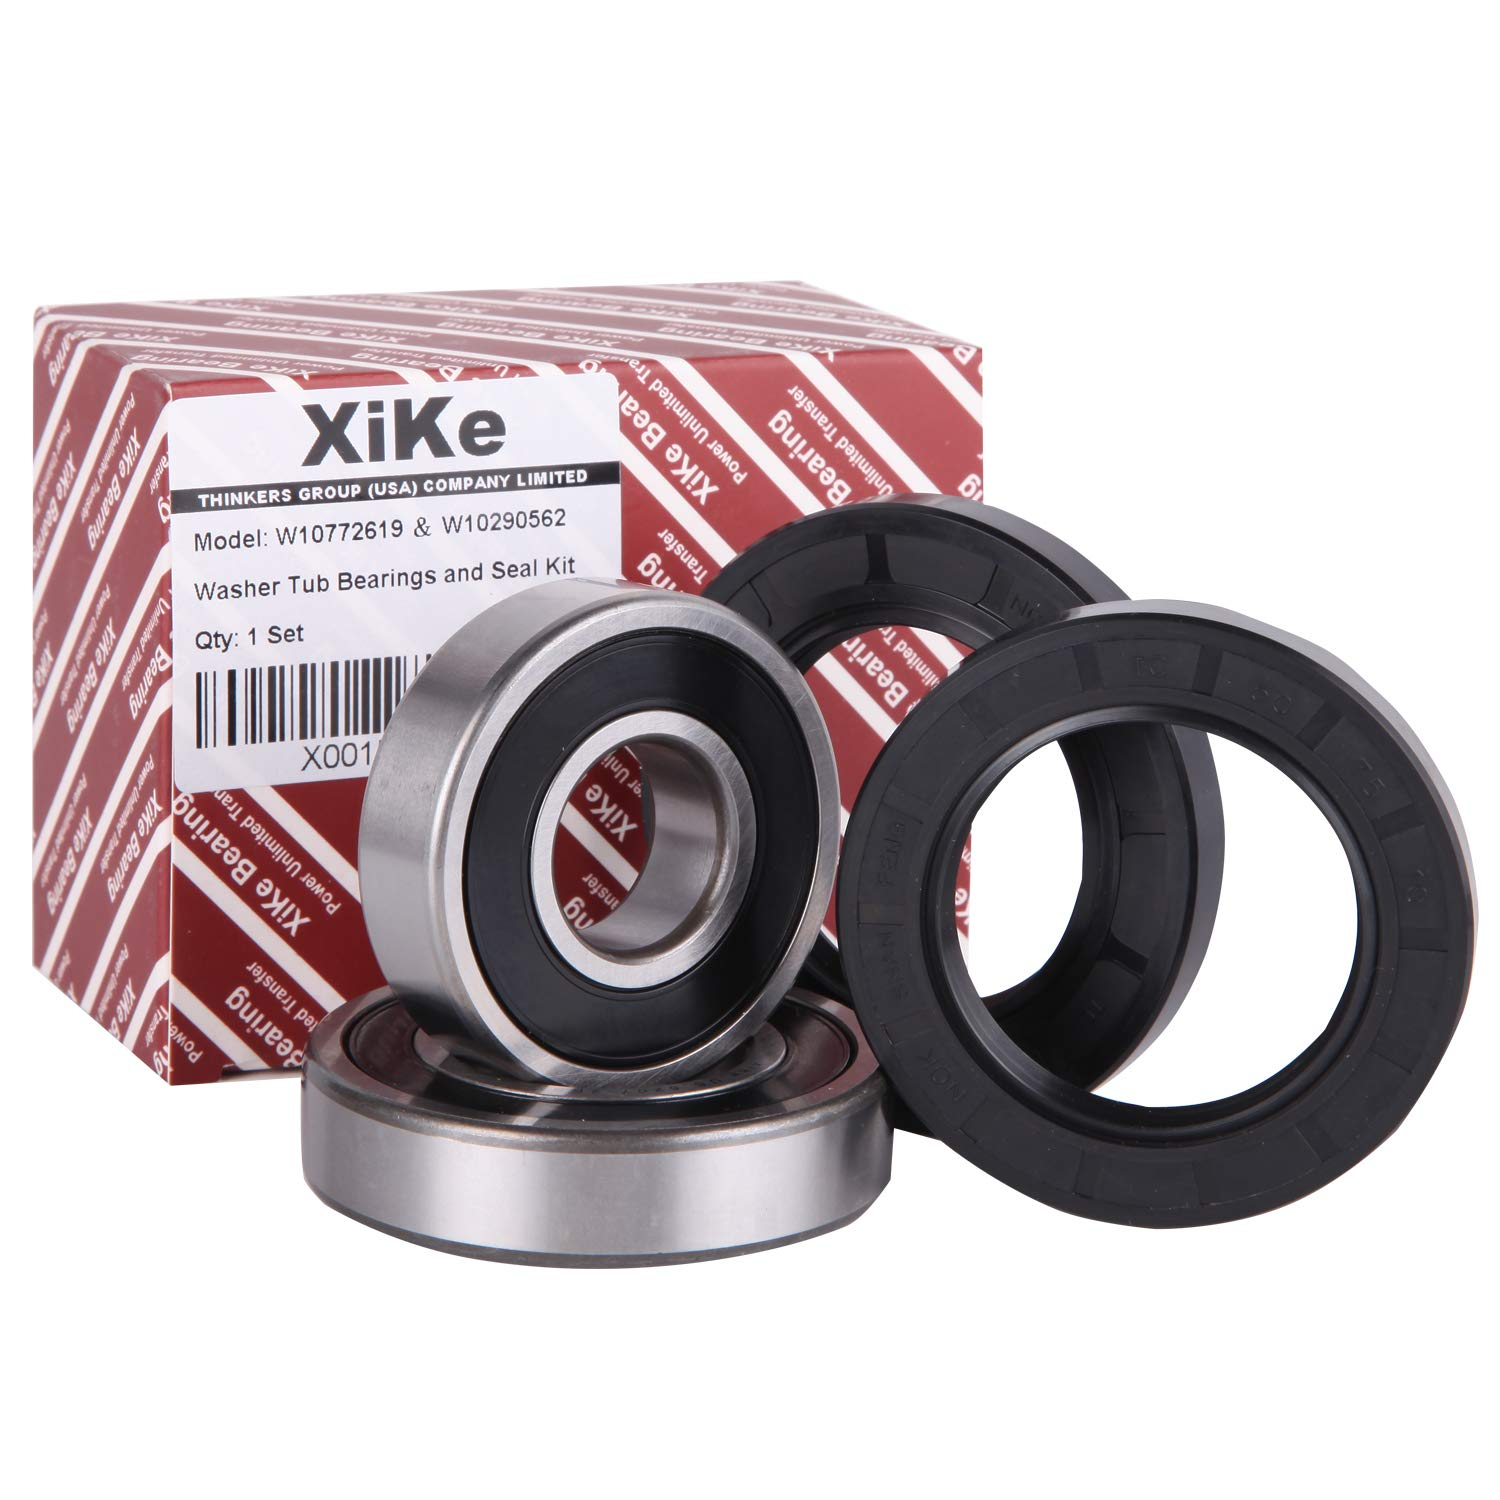 XiKe W10772619, W10290562 and W10283358 Front Load Washer Tub Bearing and Seal Kit, Rotate Quiet and Durable Replacement for Whirlpool and Maytag Etc.